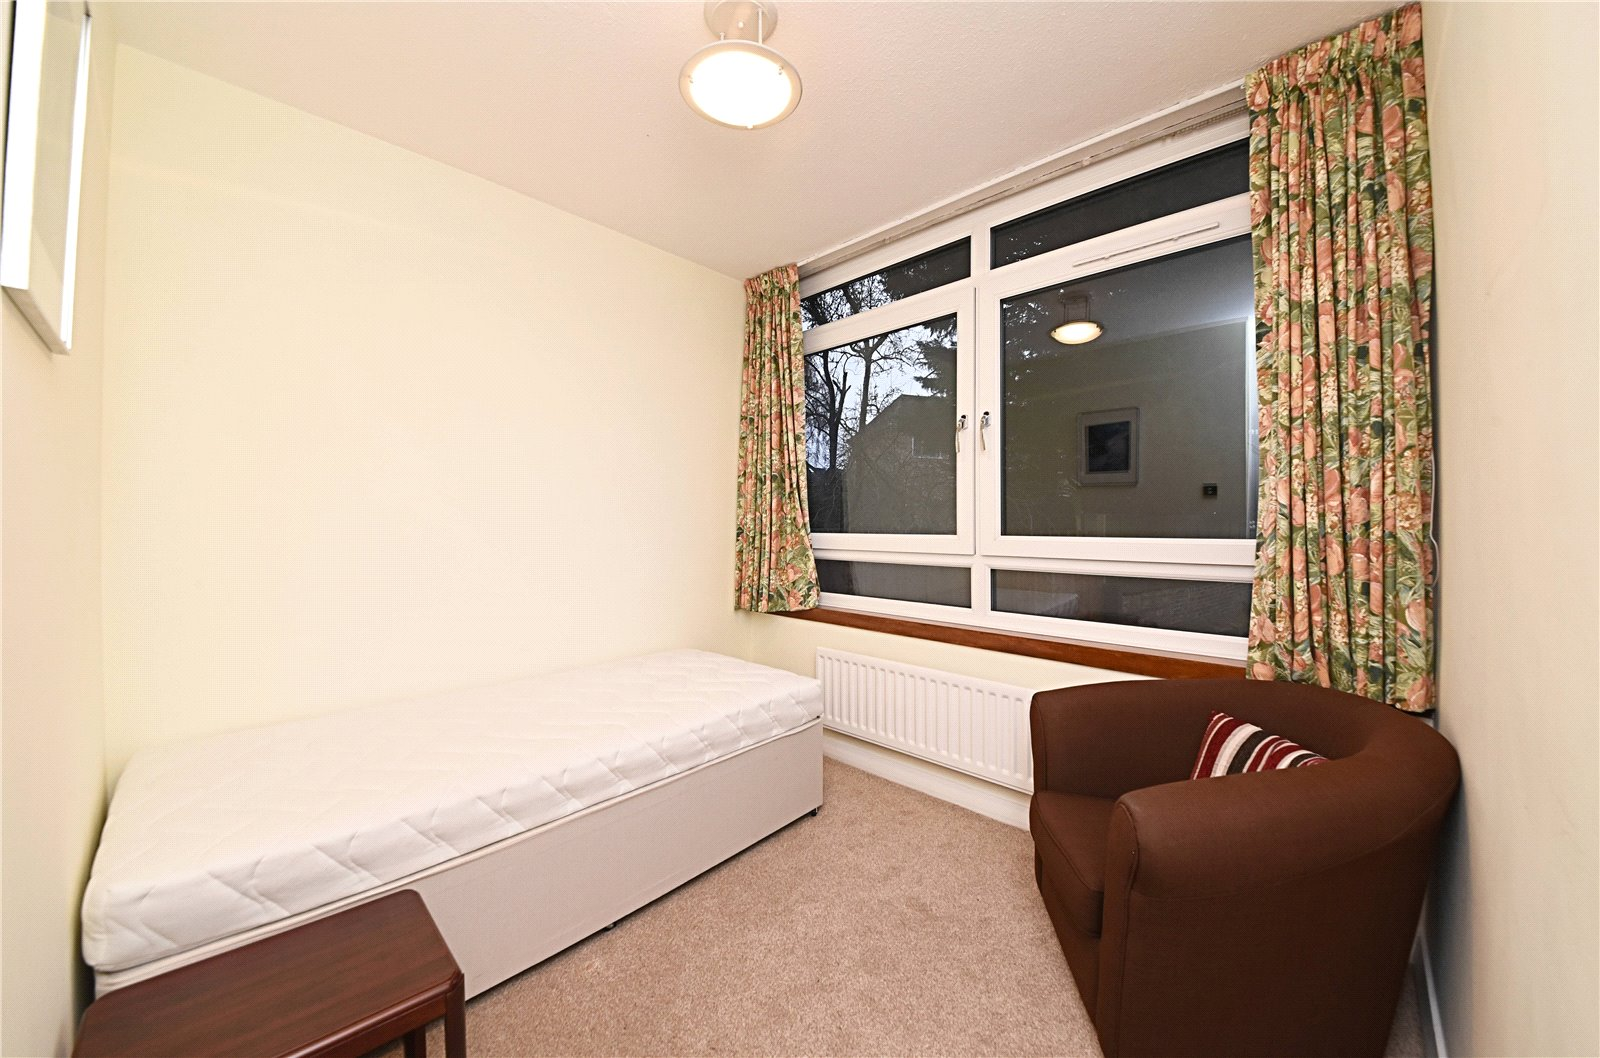 2 bed apartment for sale in Hendon, NW4 1RB  - Property Image 6